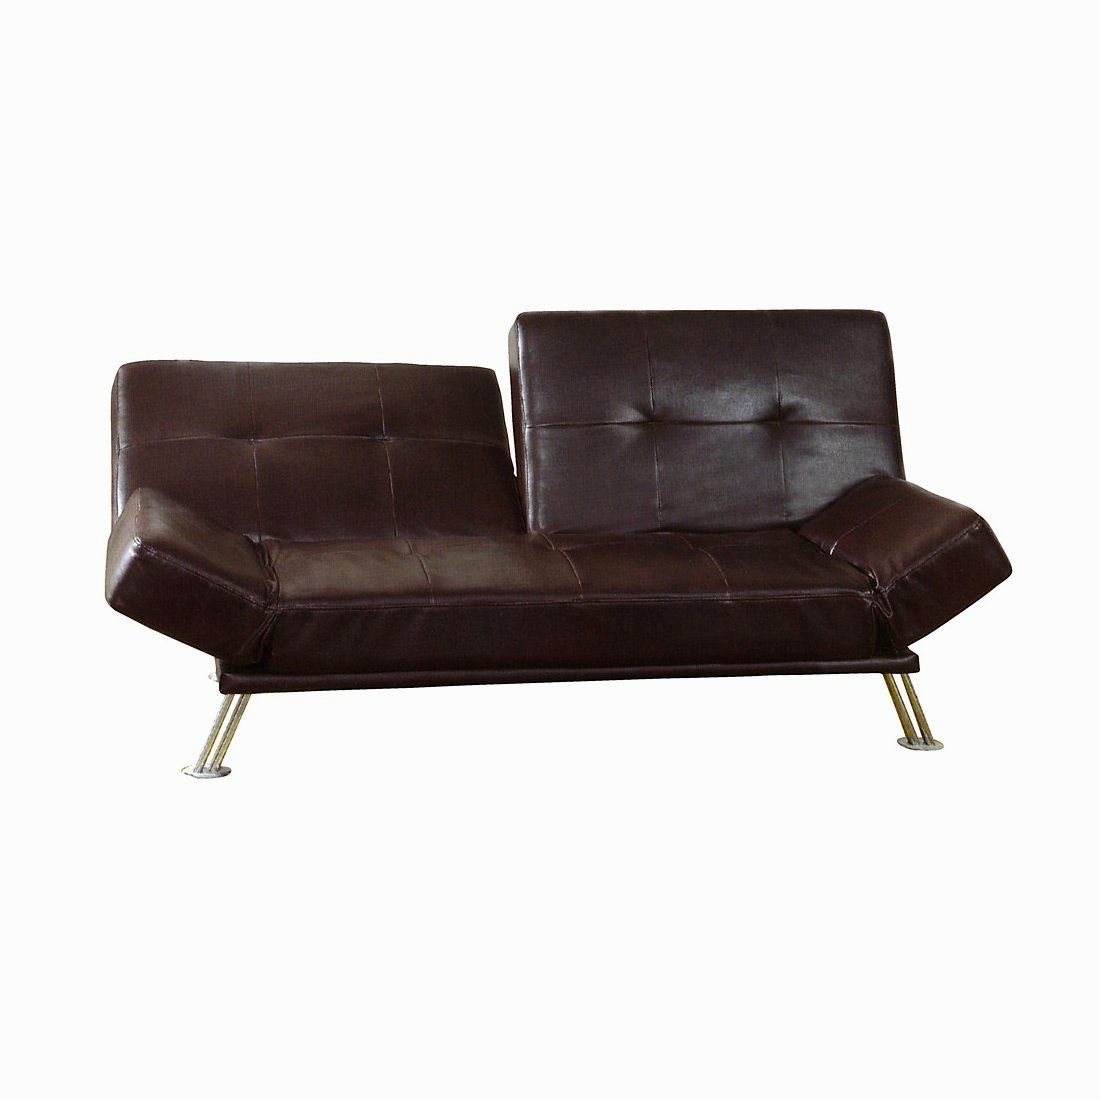 contemporary blow up sofa bed design-Wonderful Blow Up sofa Bed Online